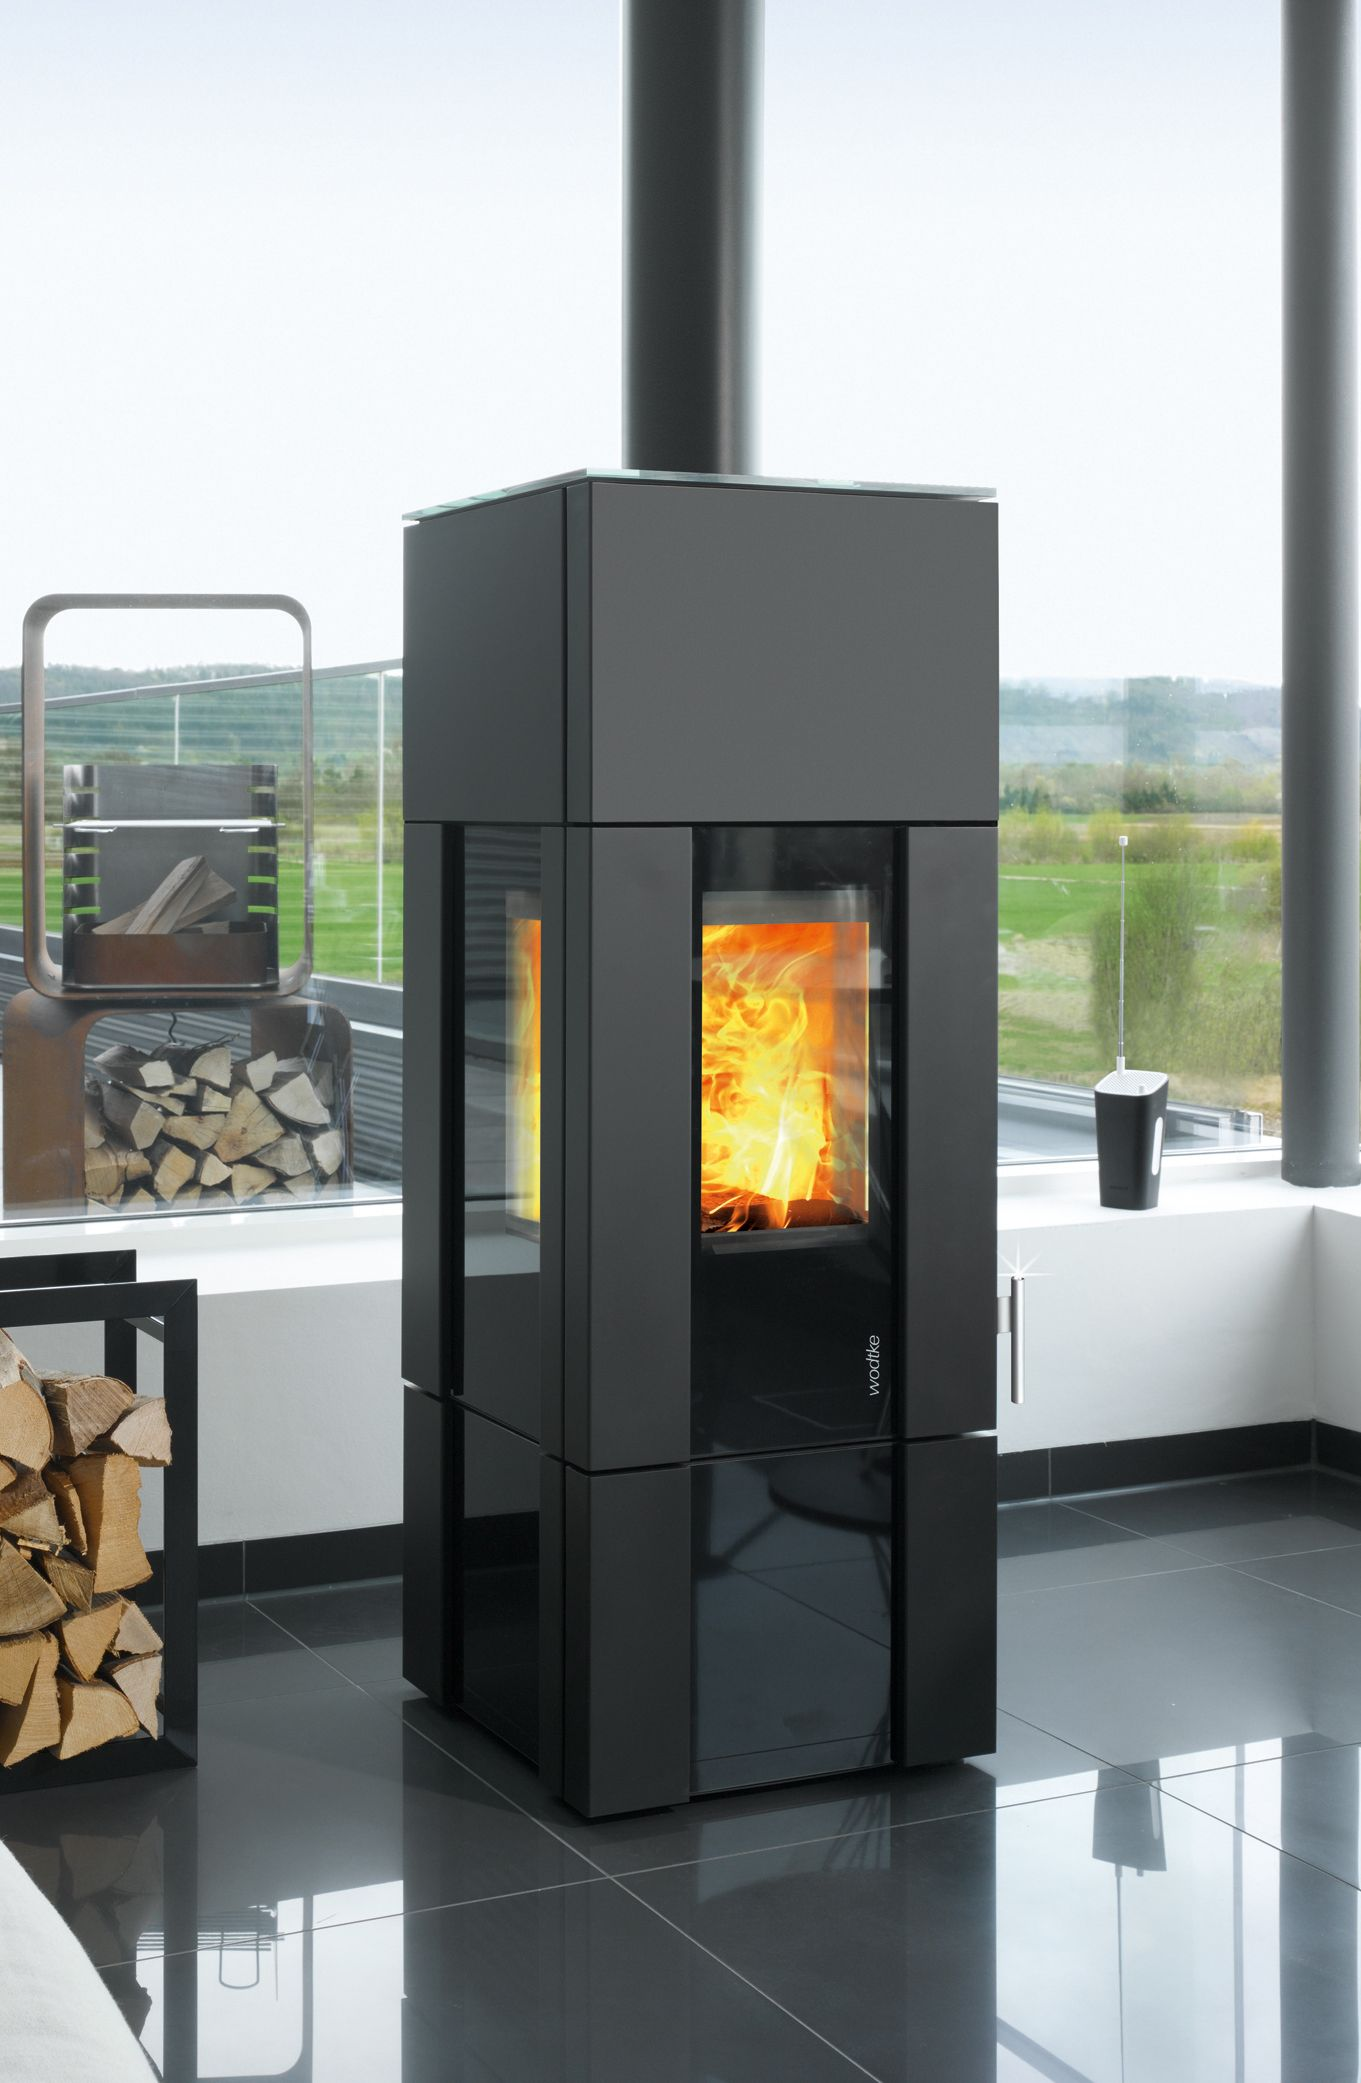 wodtke new look f9 kaminofen mit hiclean filtera technik fireplace